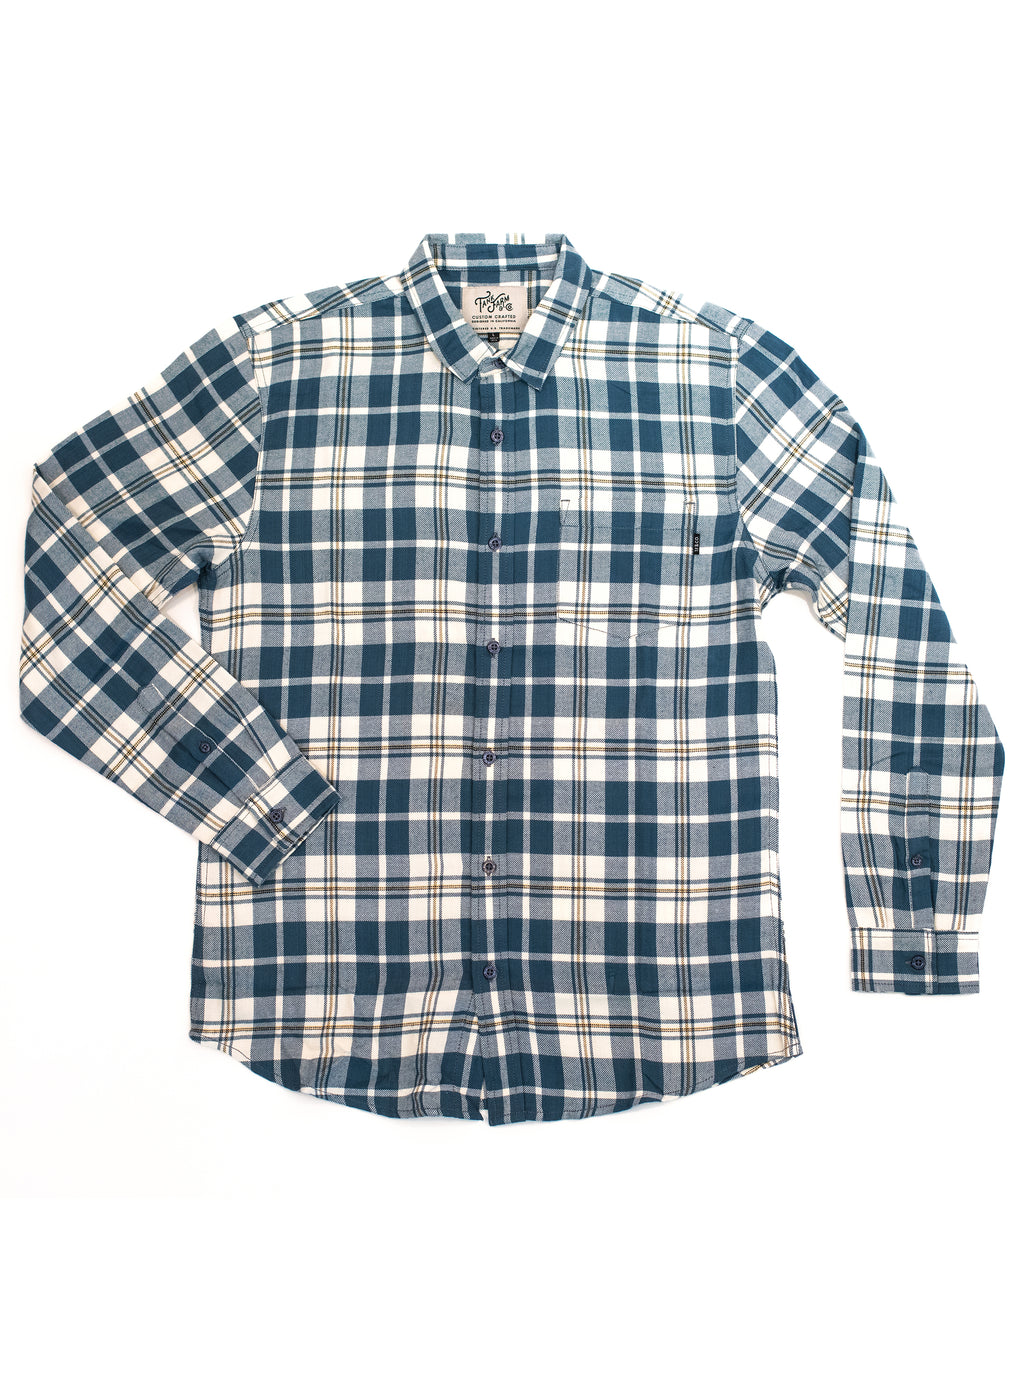 ABDS FLANNEL BLUE/WHITE - Anderson Bros Design and Supply